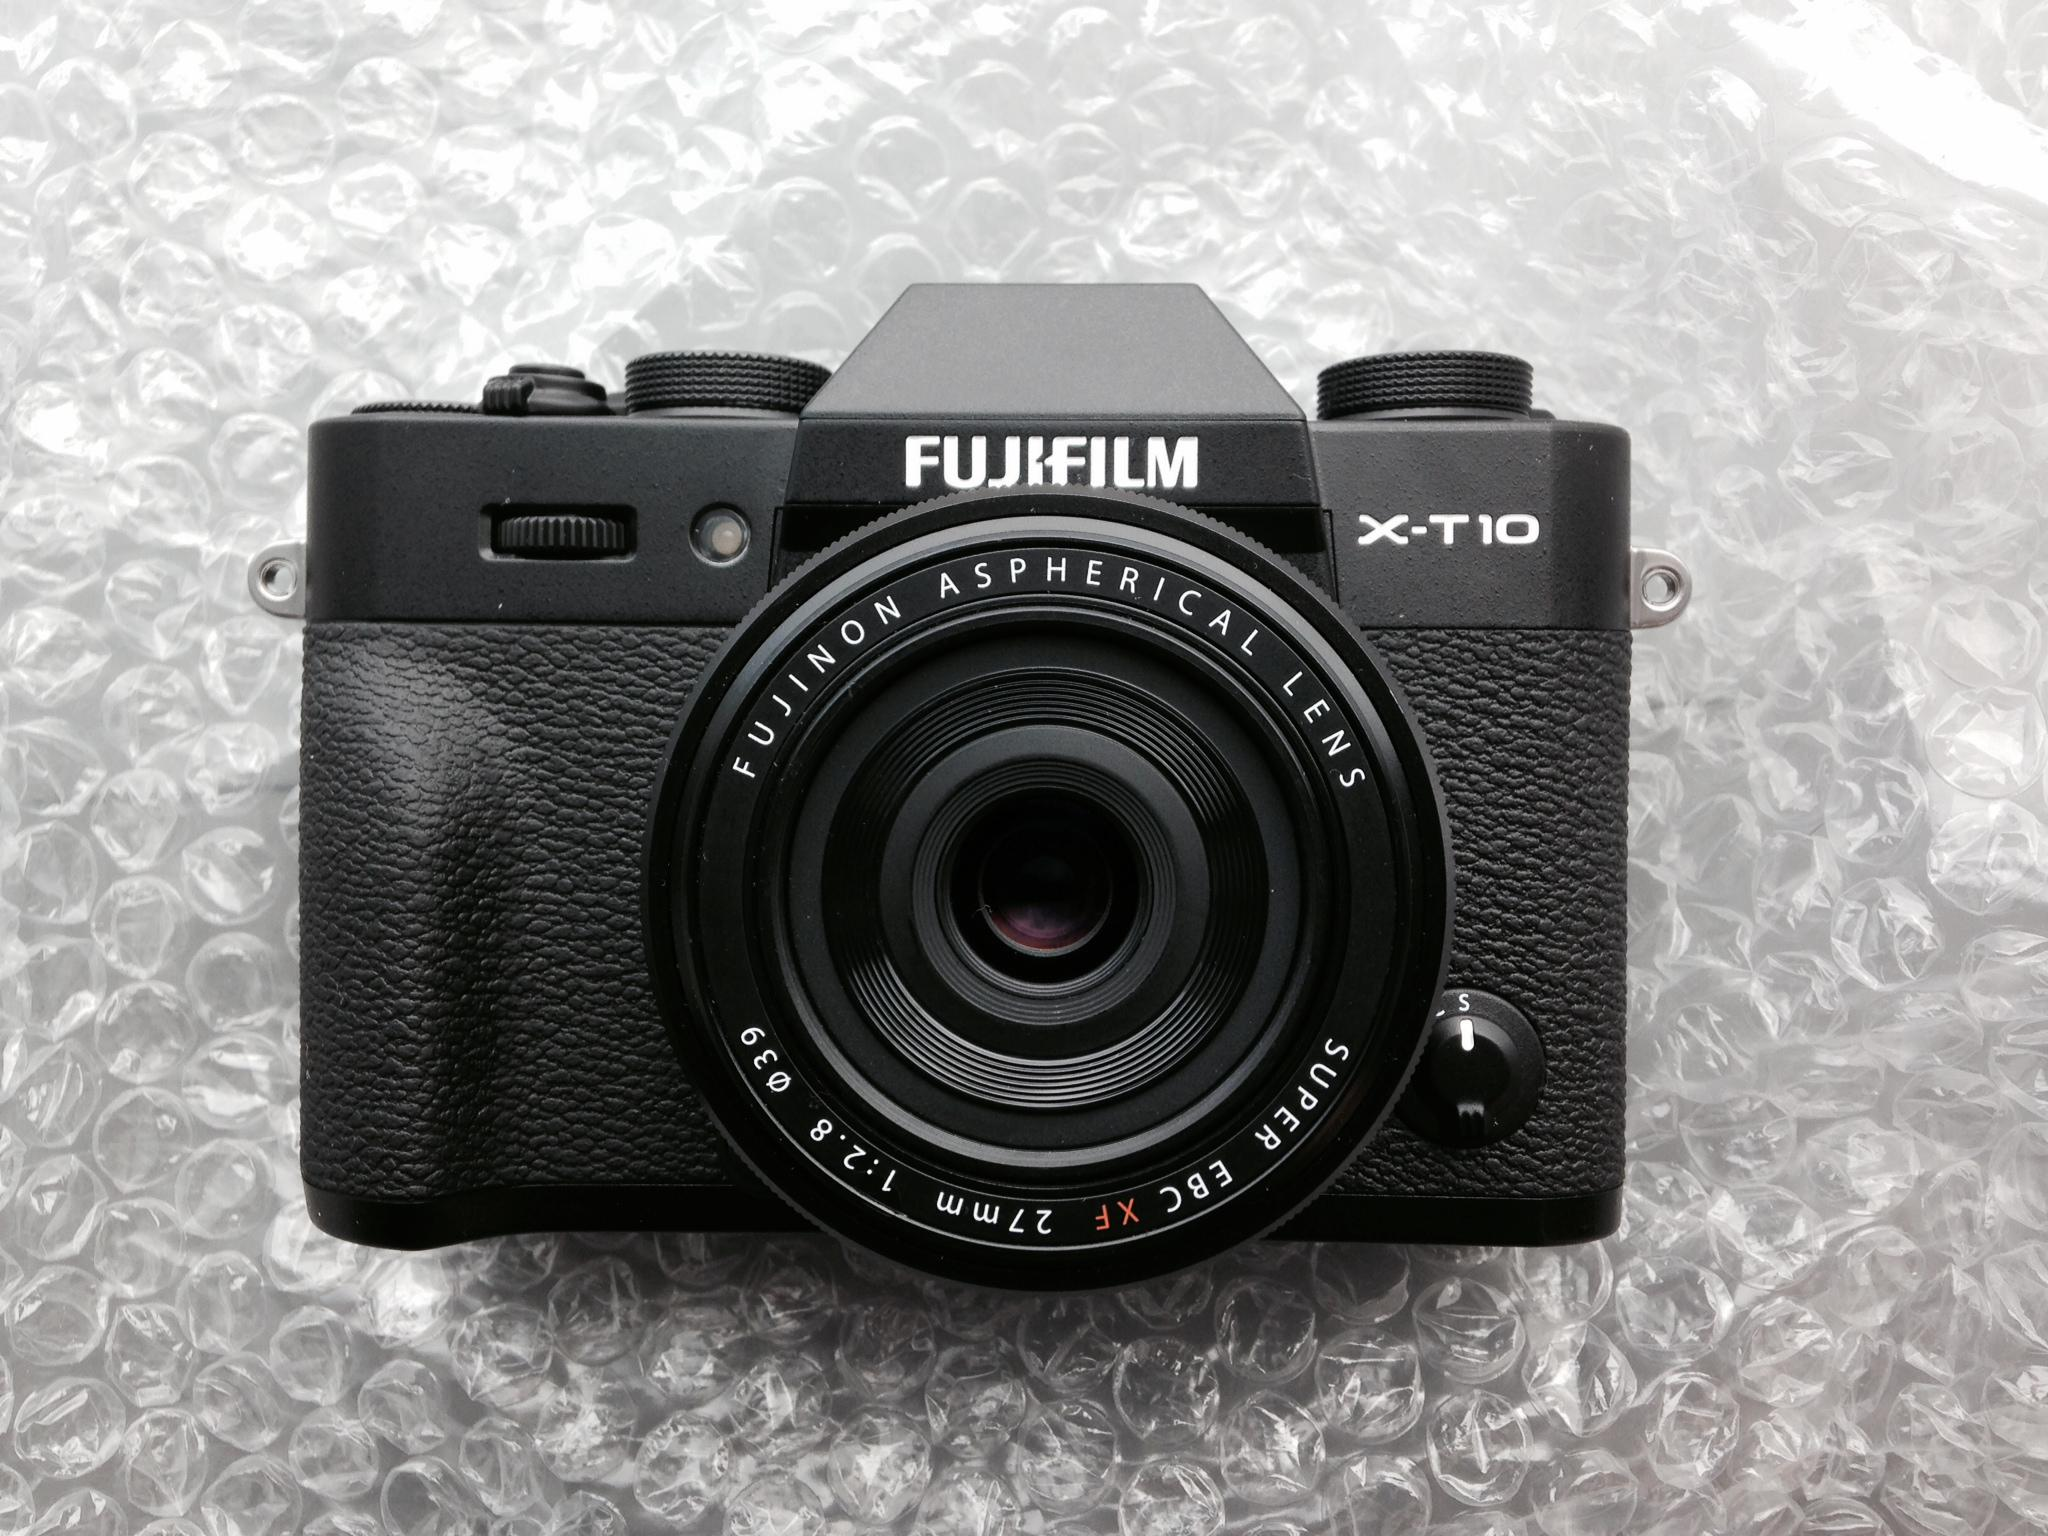 We love that new camera smell. http://t.co/O7nD9eXQMZ